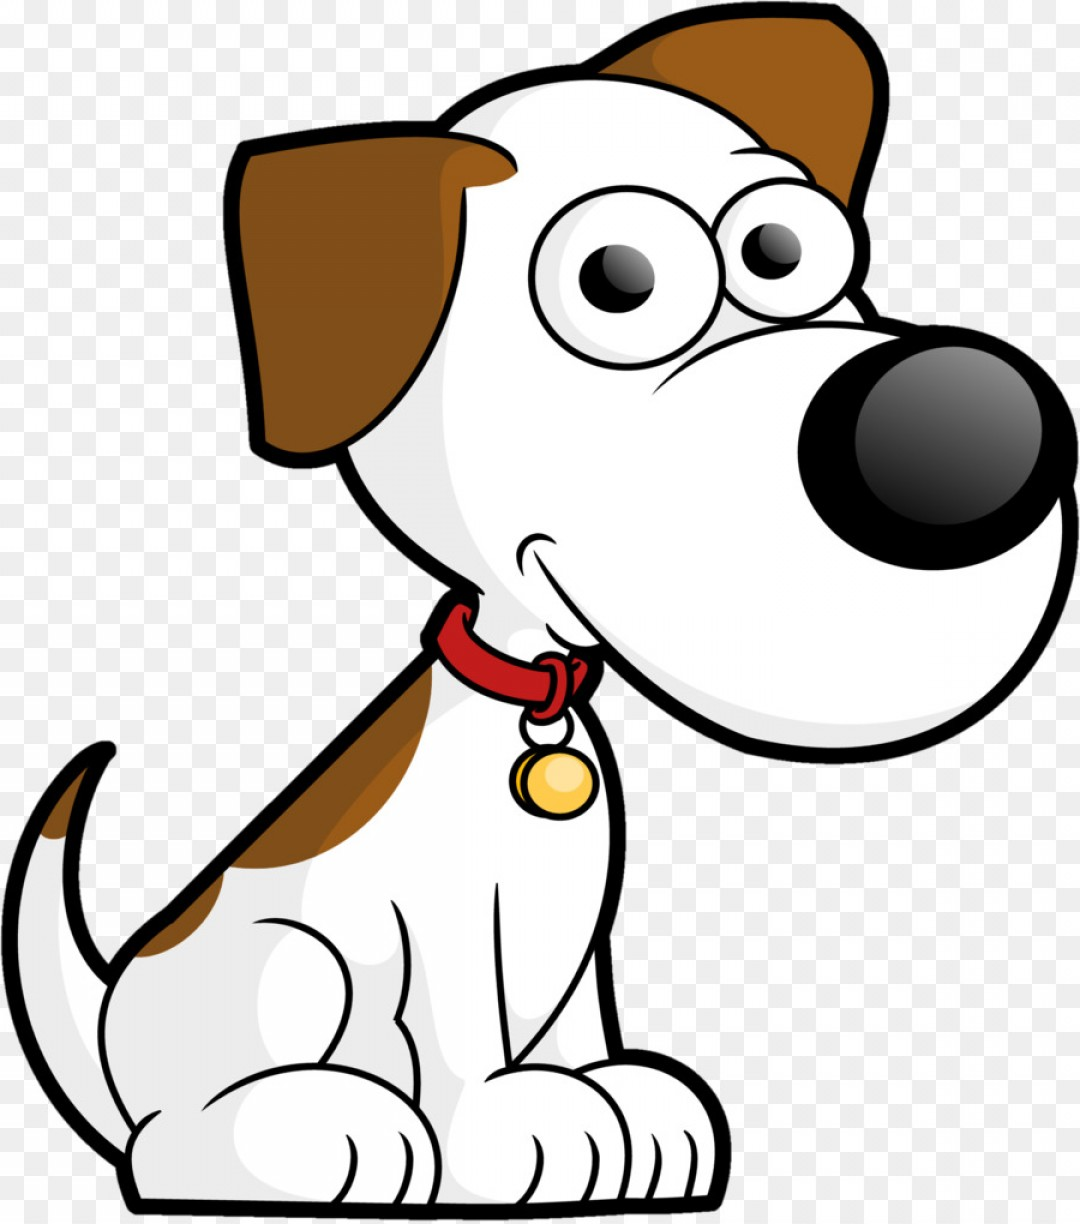 Png Dog Licence Puppy Clip Art Mean Dog Cliparts.